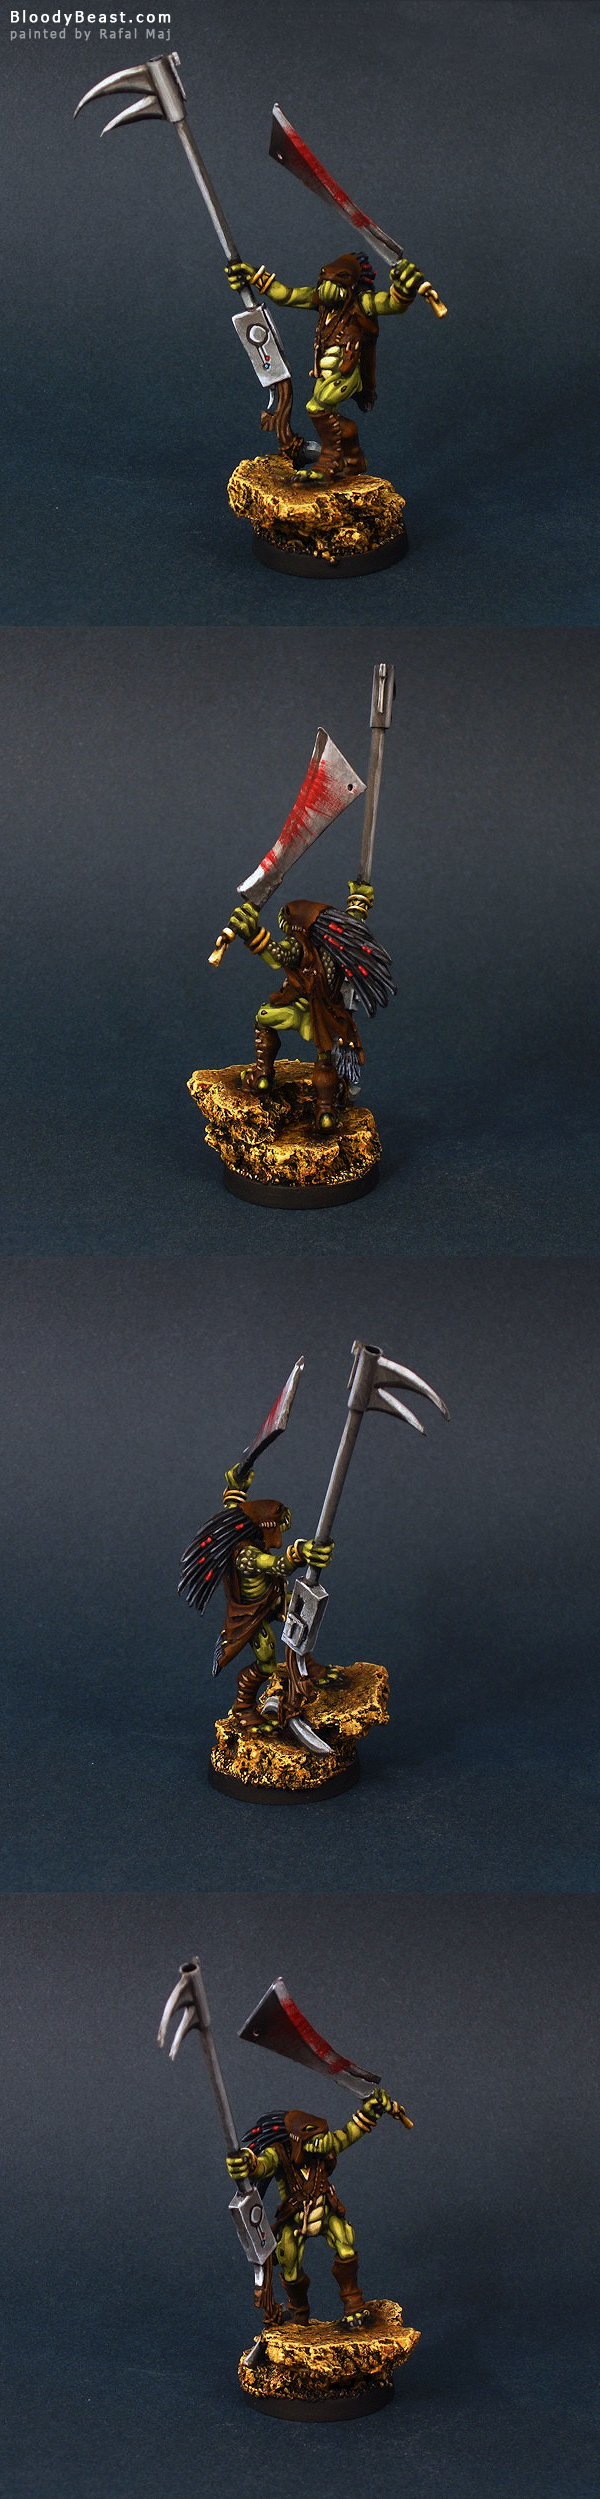 Tau Kroot Sharpshooter painted by Rafal Maj (BloodyBeast.com)